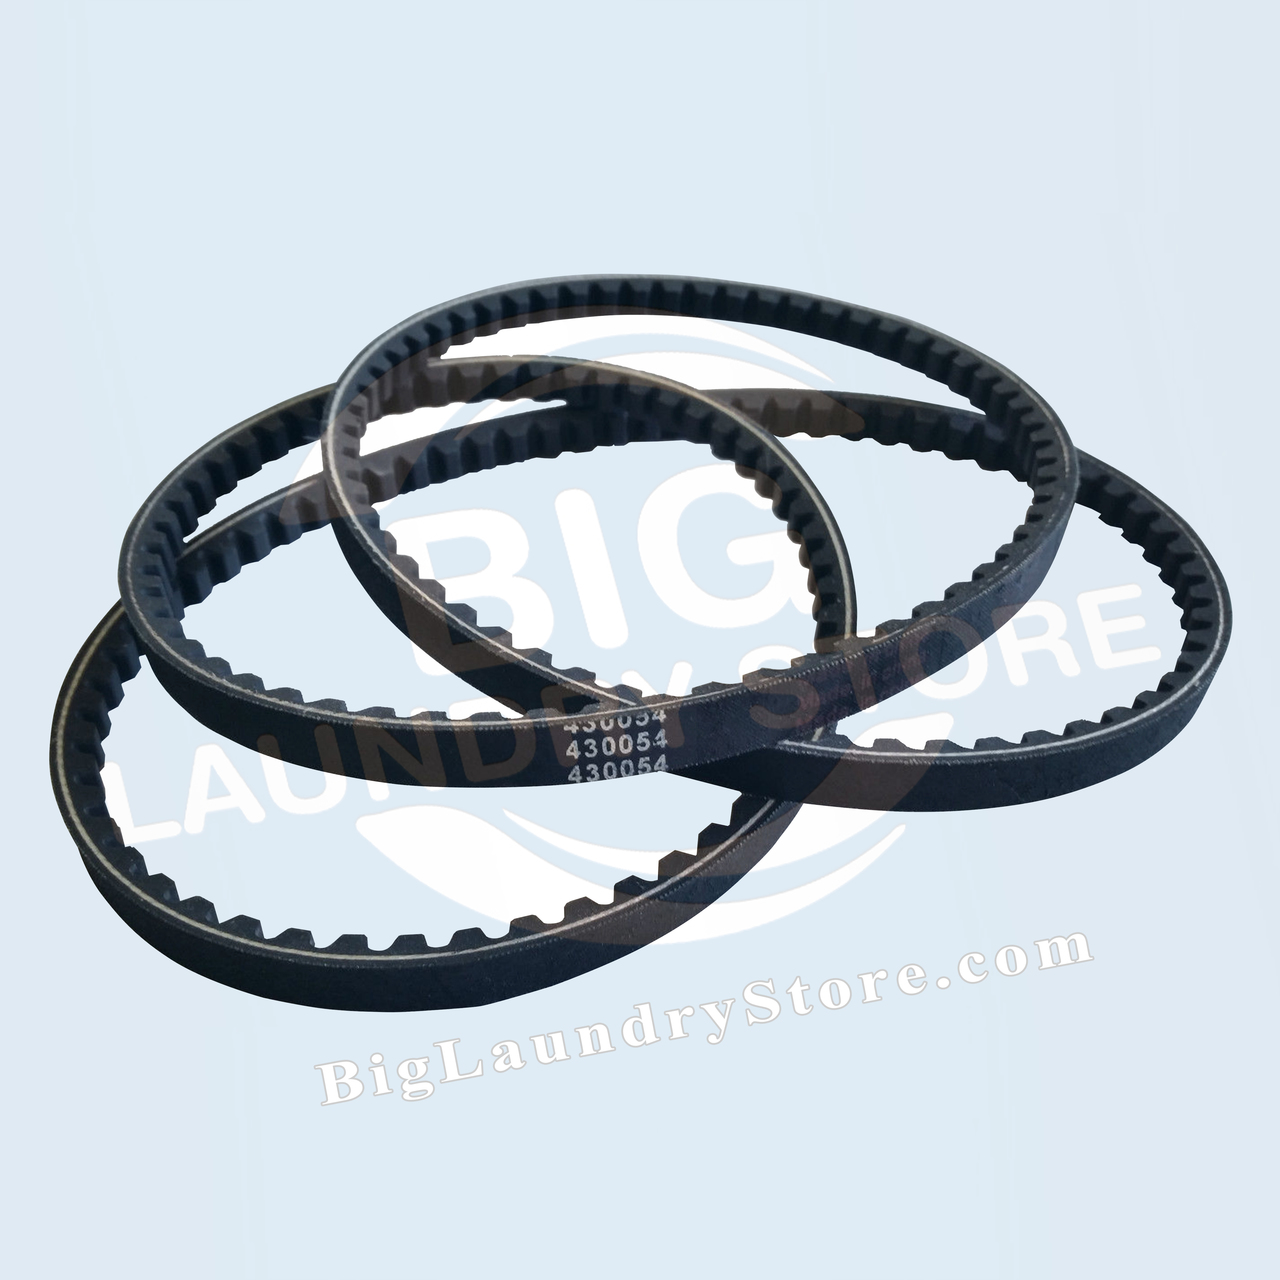 Cogged Drive Belt - Huebsch, Speed Queen or Unimac # 430054